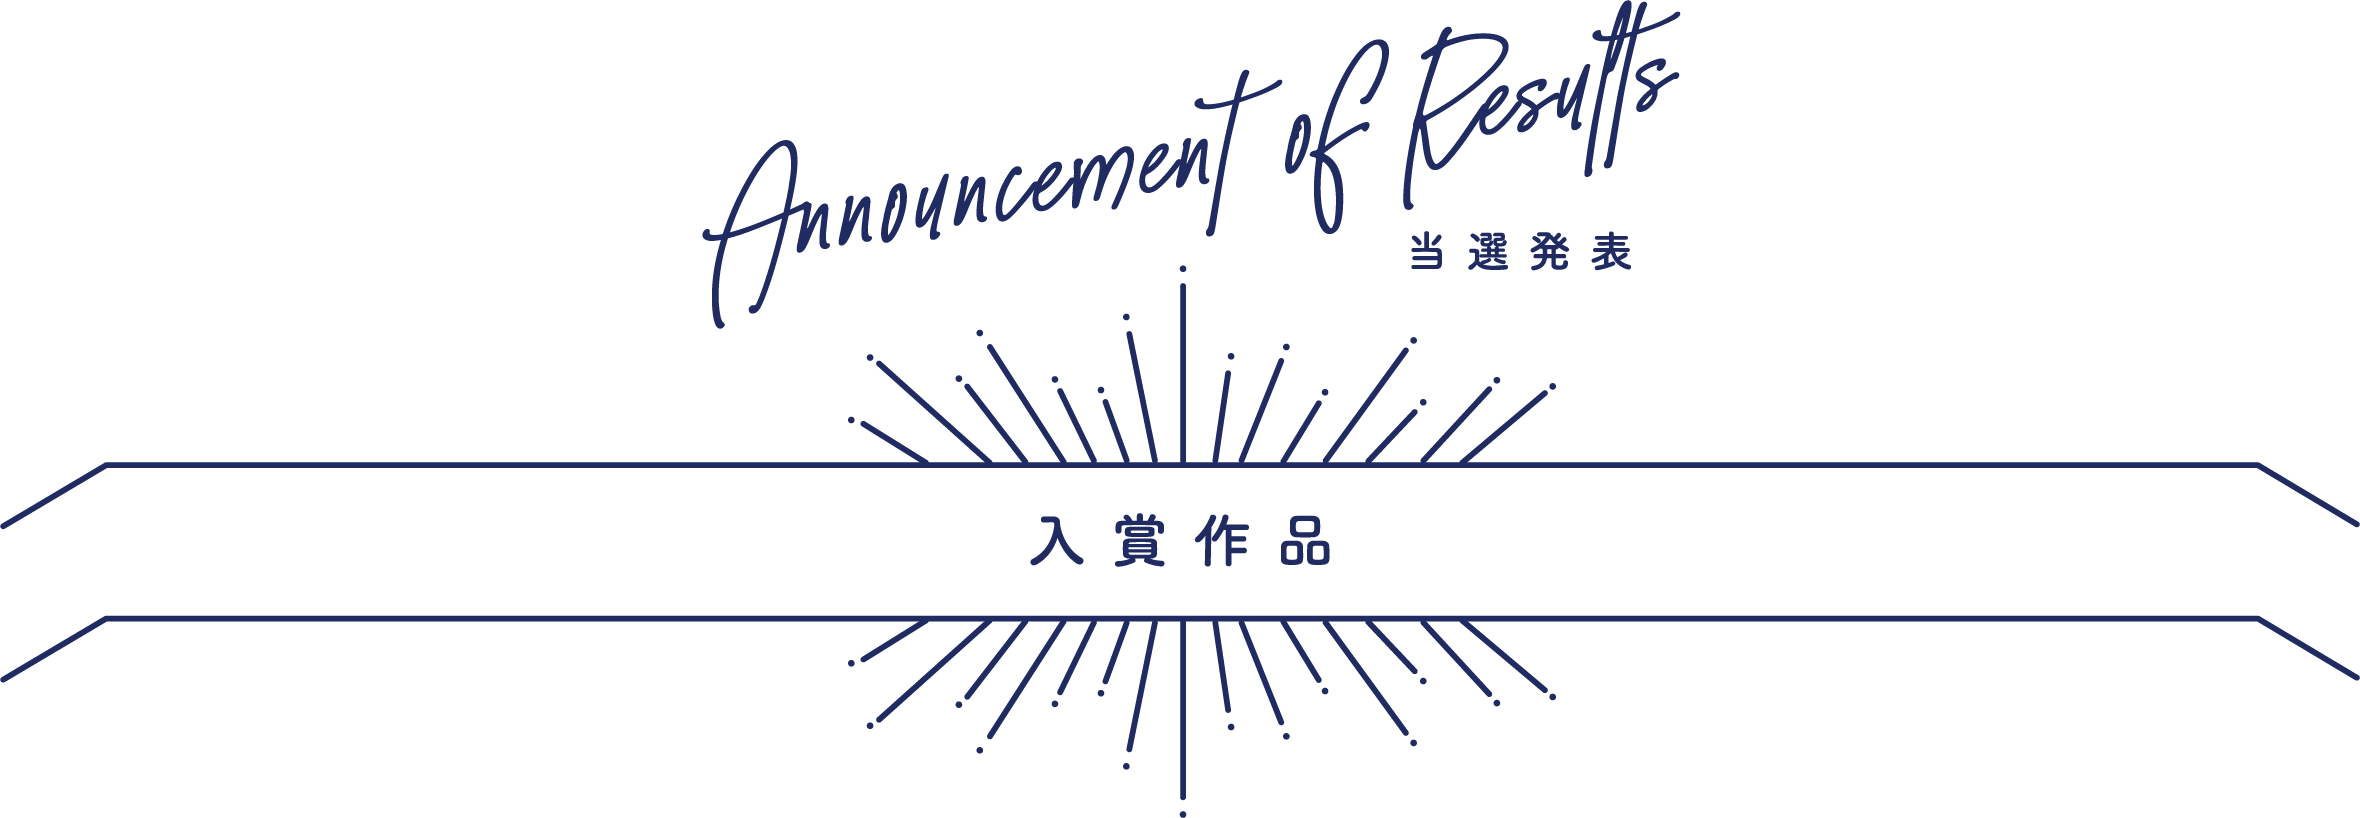 Announcement of Results 当選発表